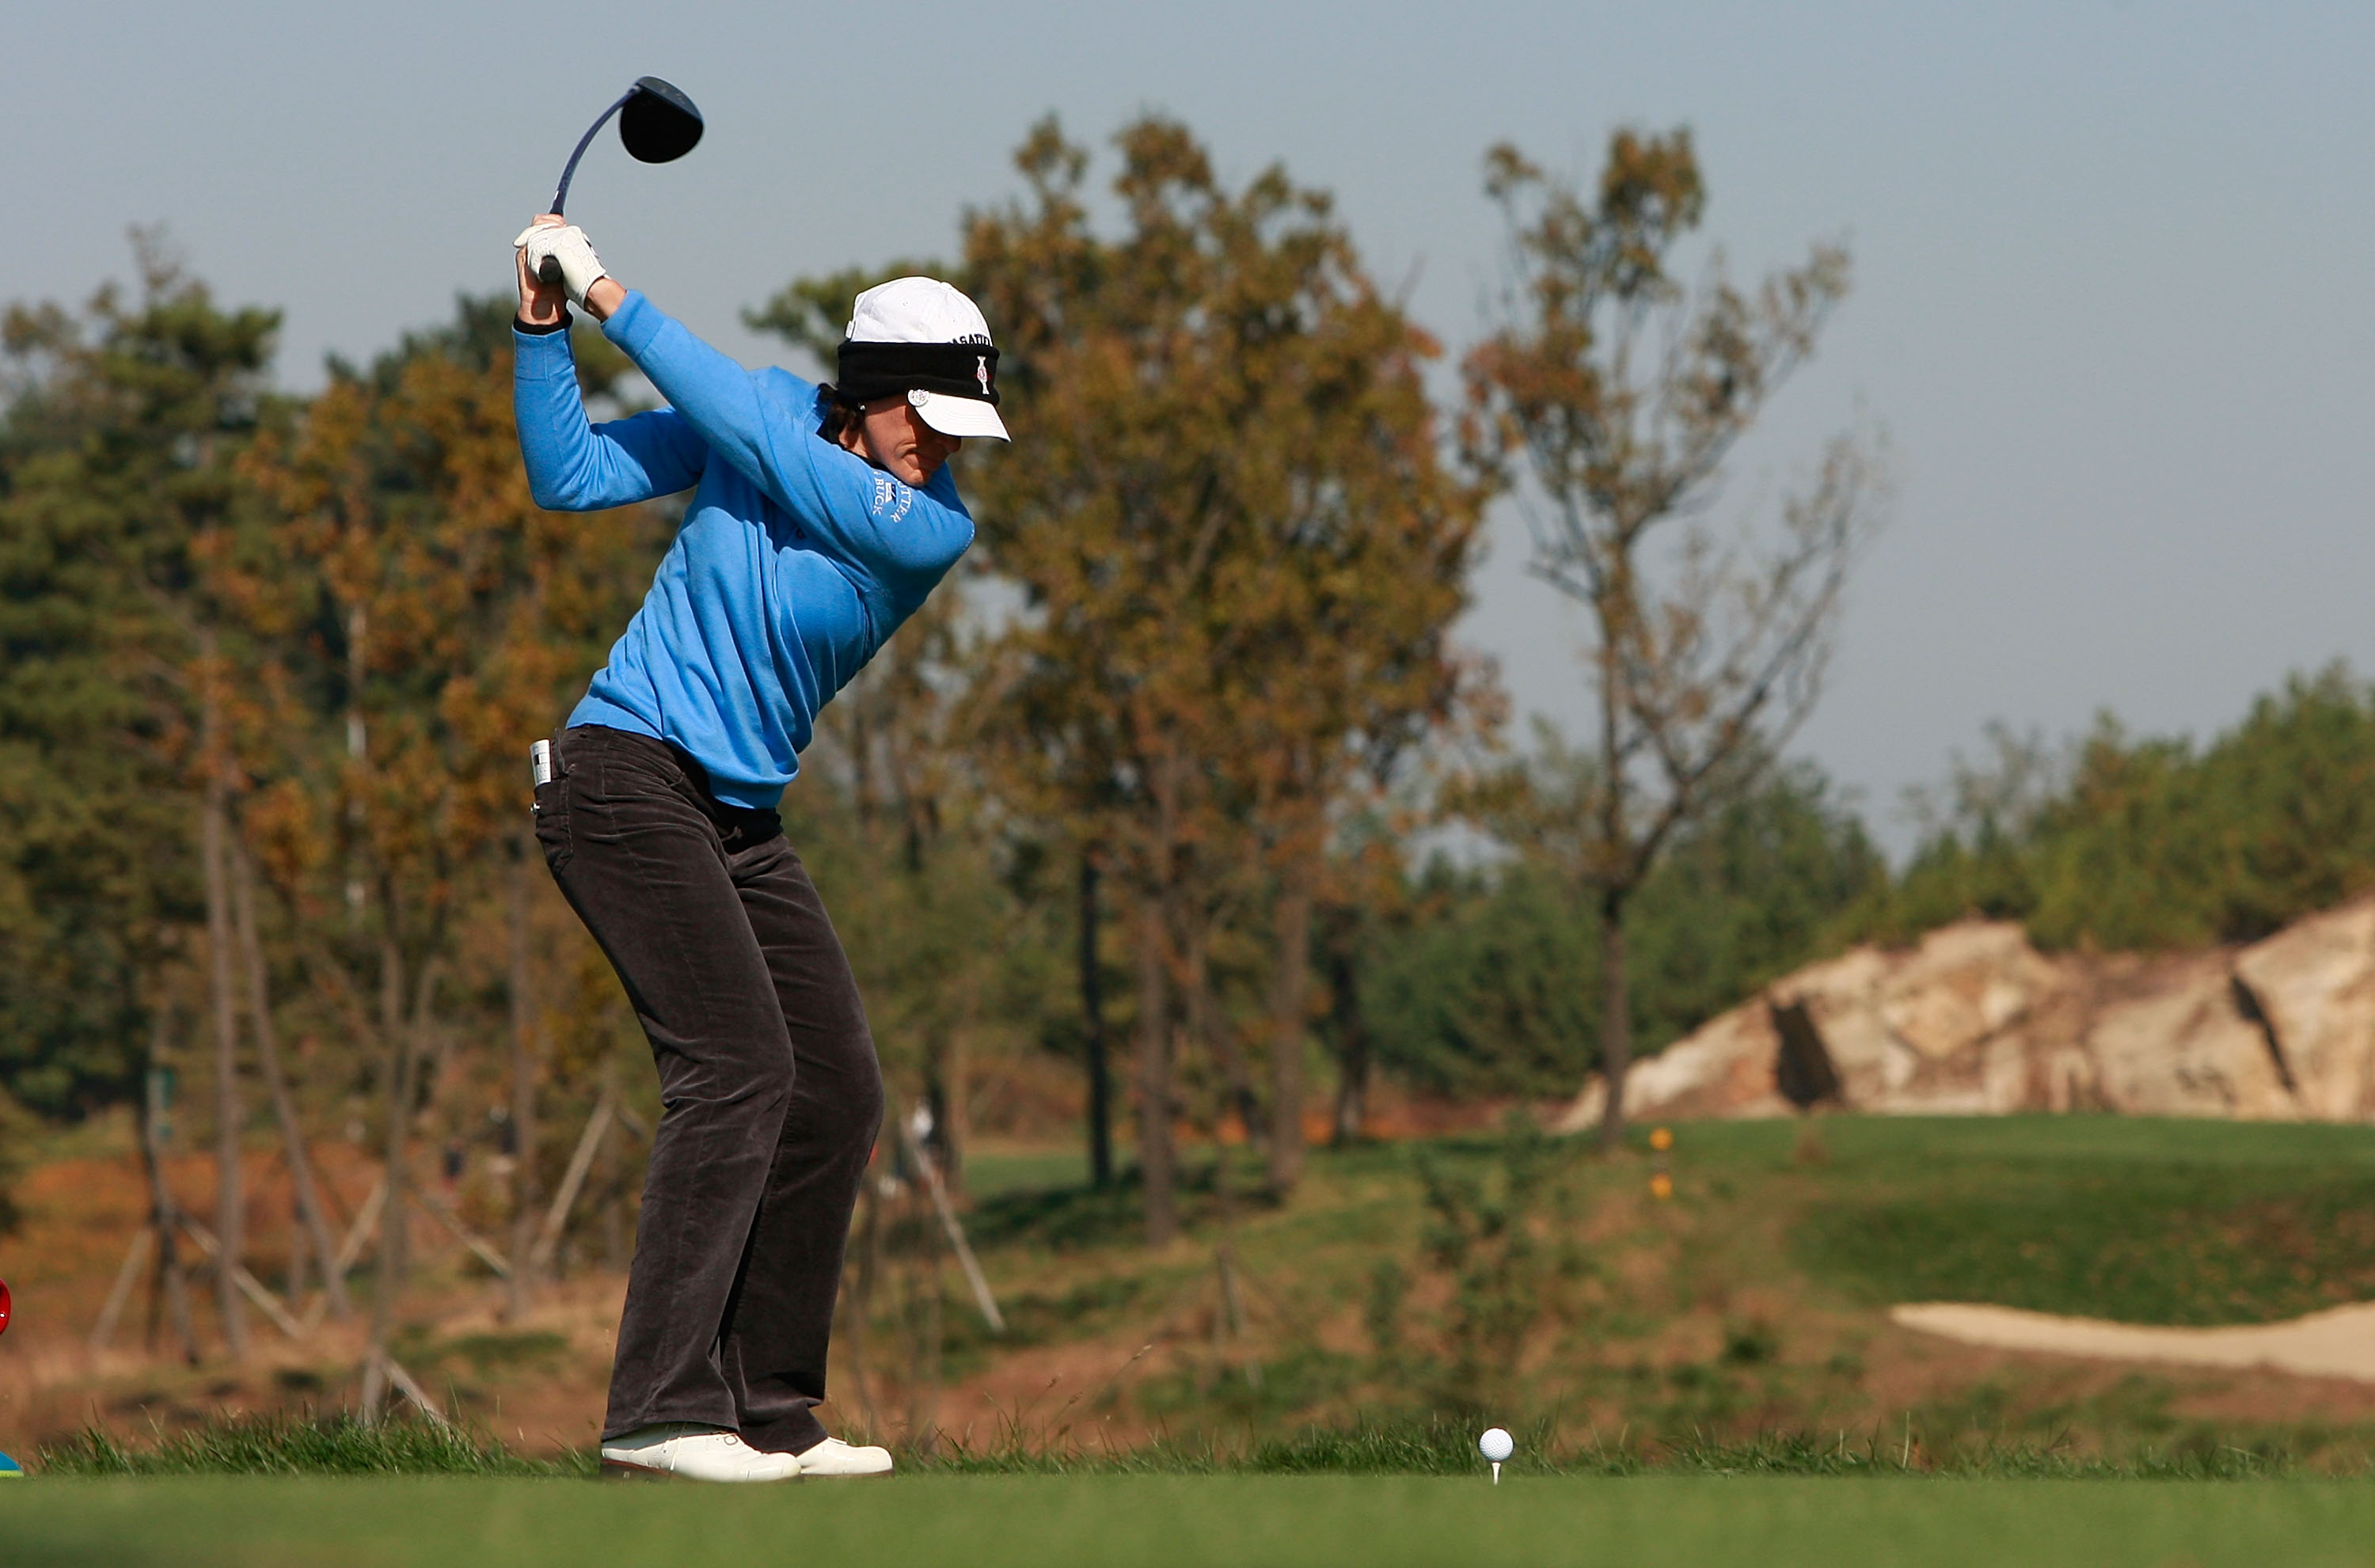 INCHEON, SOUTH KOREA - OCTOBER 29:  Juli Inkster of United States hits a tee shot on the second hole during the 2010 LPGA Hana Bank Championship at Sky 72 golf club on October 29, 2010 in Incheon, South Korea.  (Photo by Chung Sung-Jun/Getty Images)